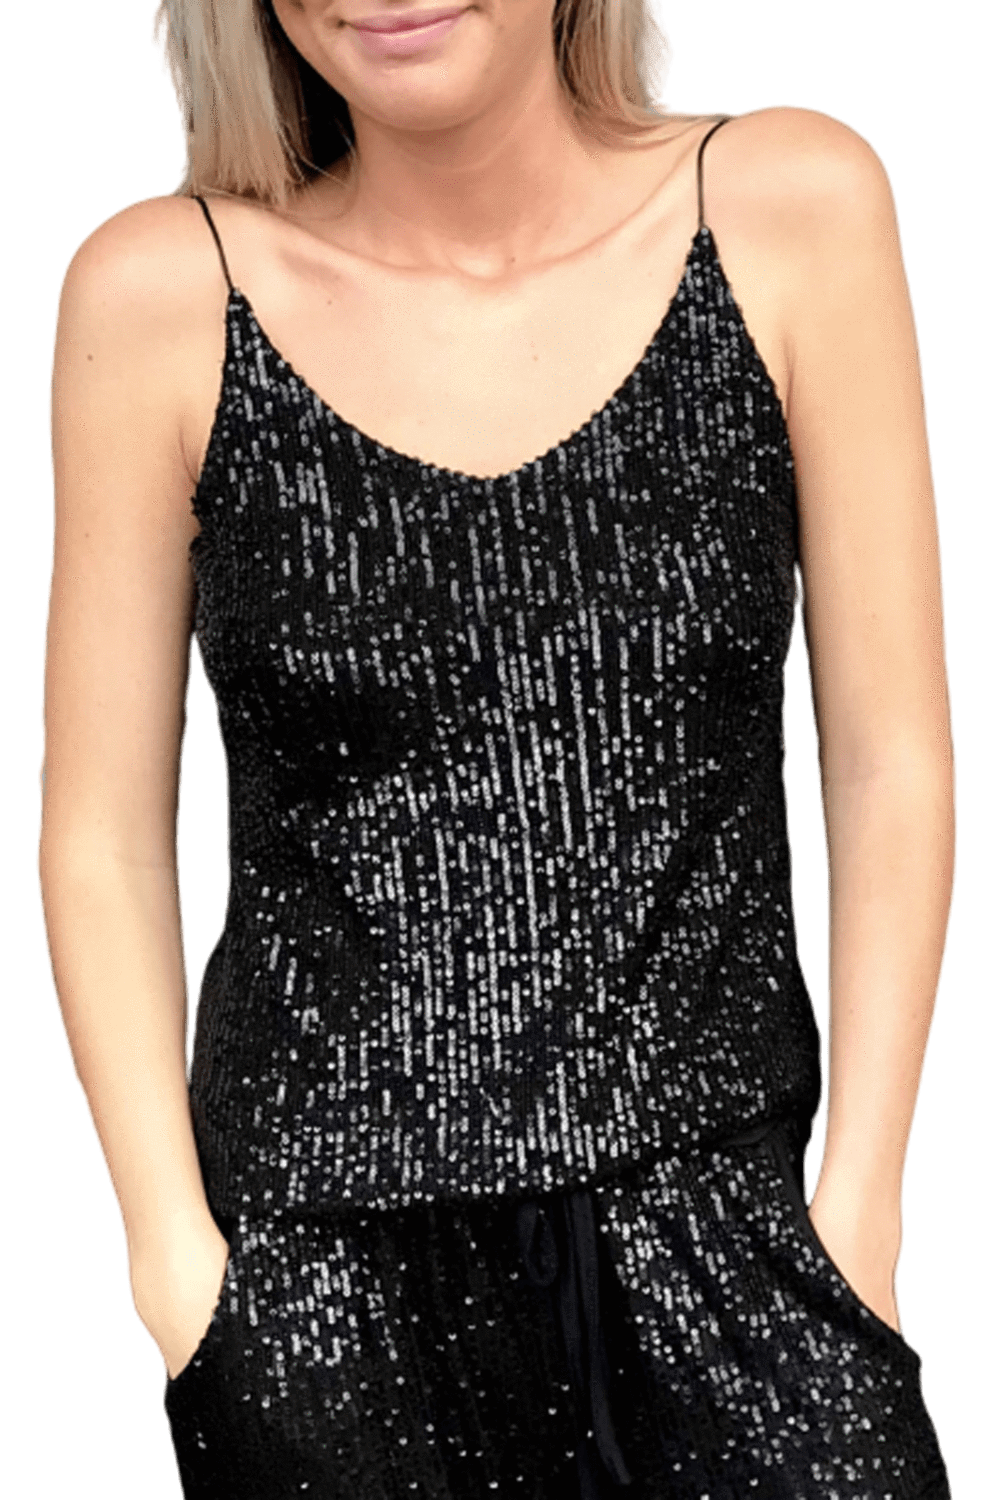 shop-sofia Ava Sparkling Black Tank Top Sofia Collections Italian Silk Linen Satin